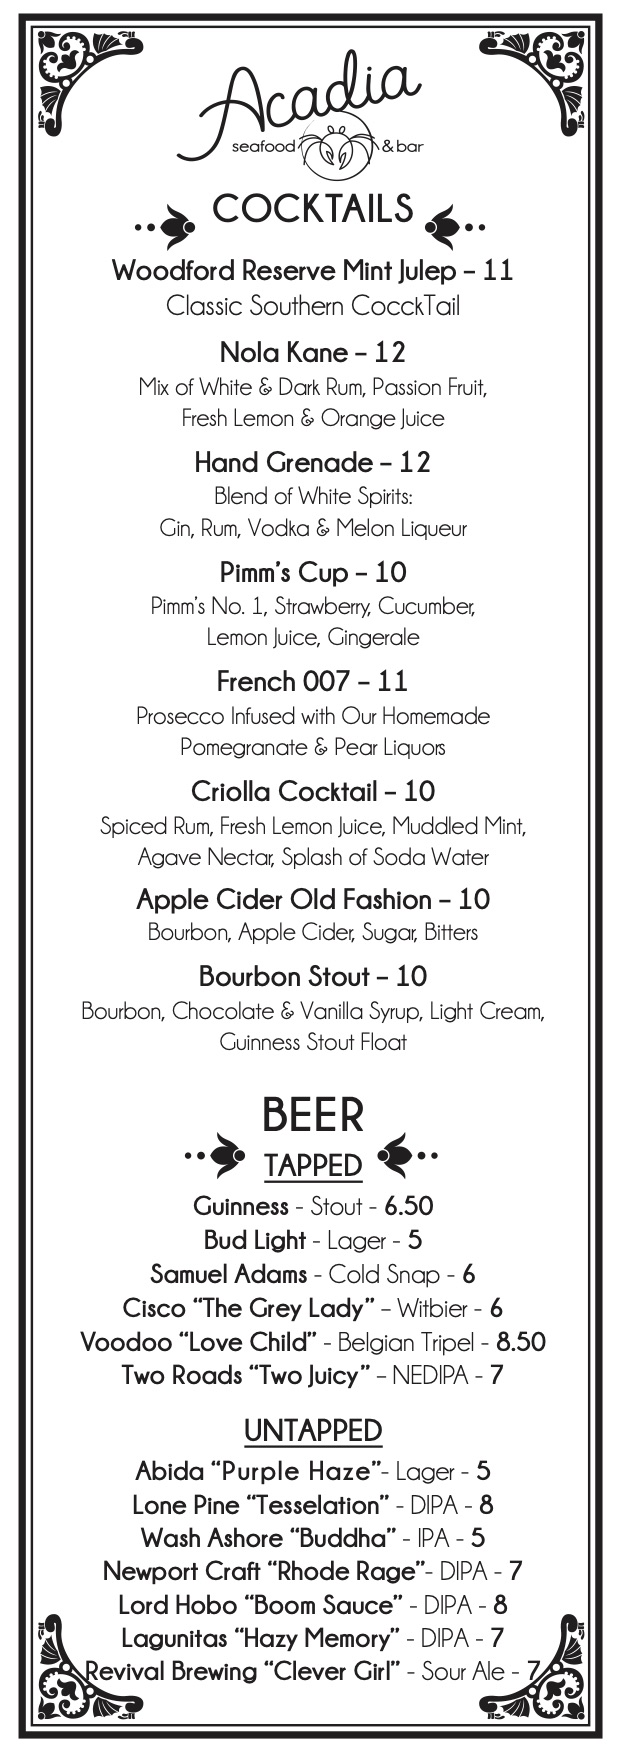 Acadia-Cocktail-Menu-Page-2